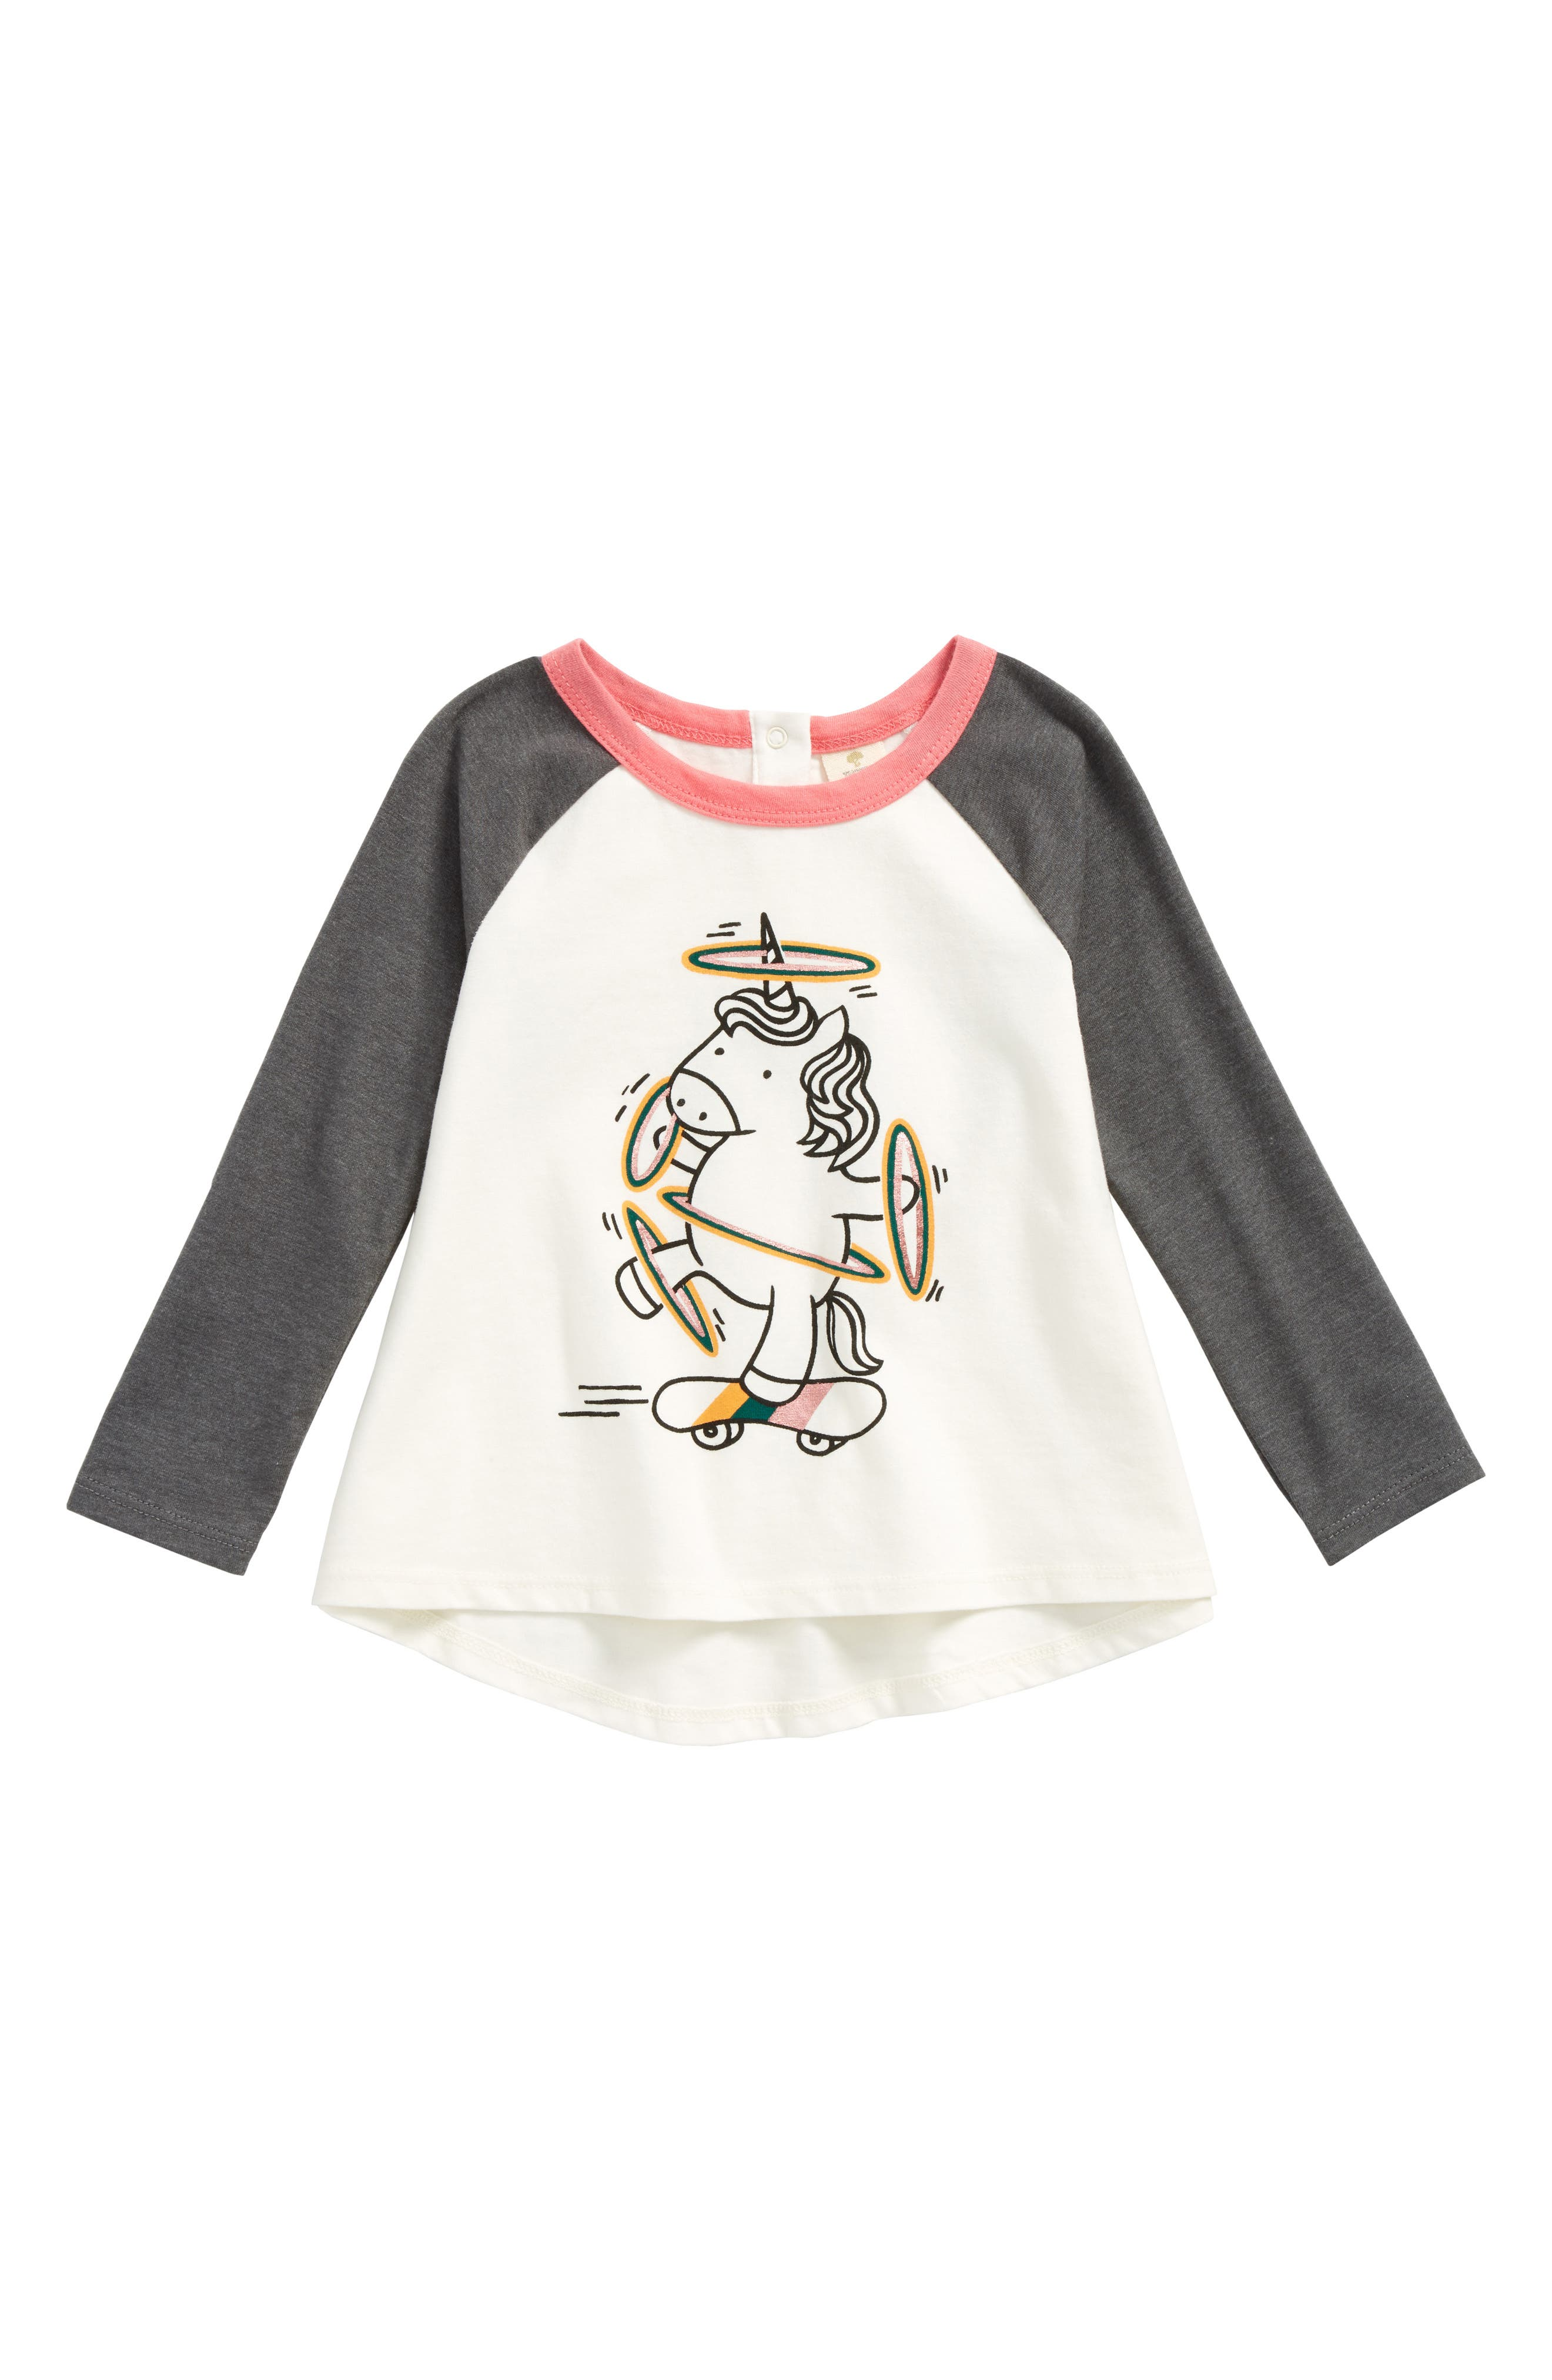 Alternate Image 1 Selected - Tucker + Tate Graphic Raglan Tee (Baby Girls)